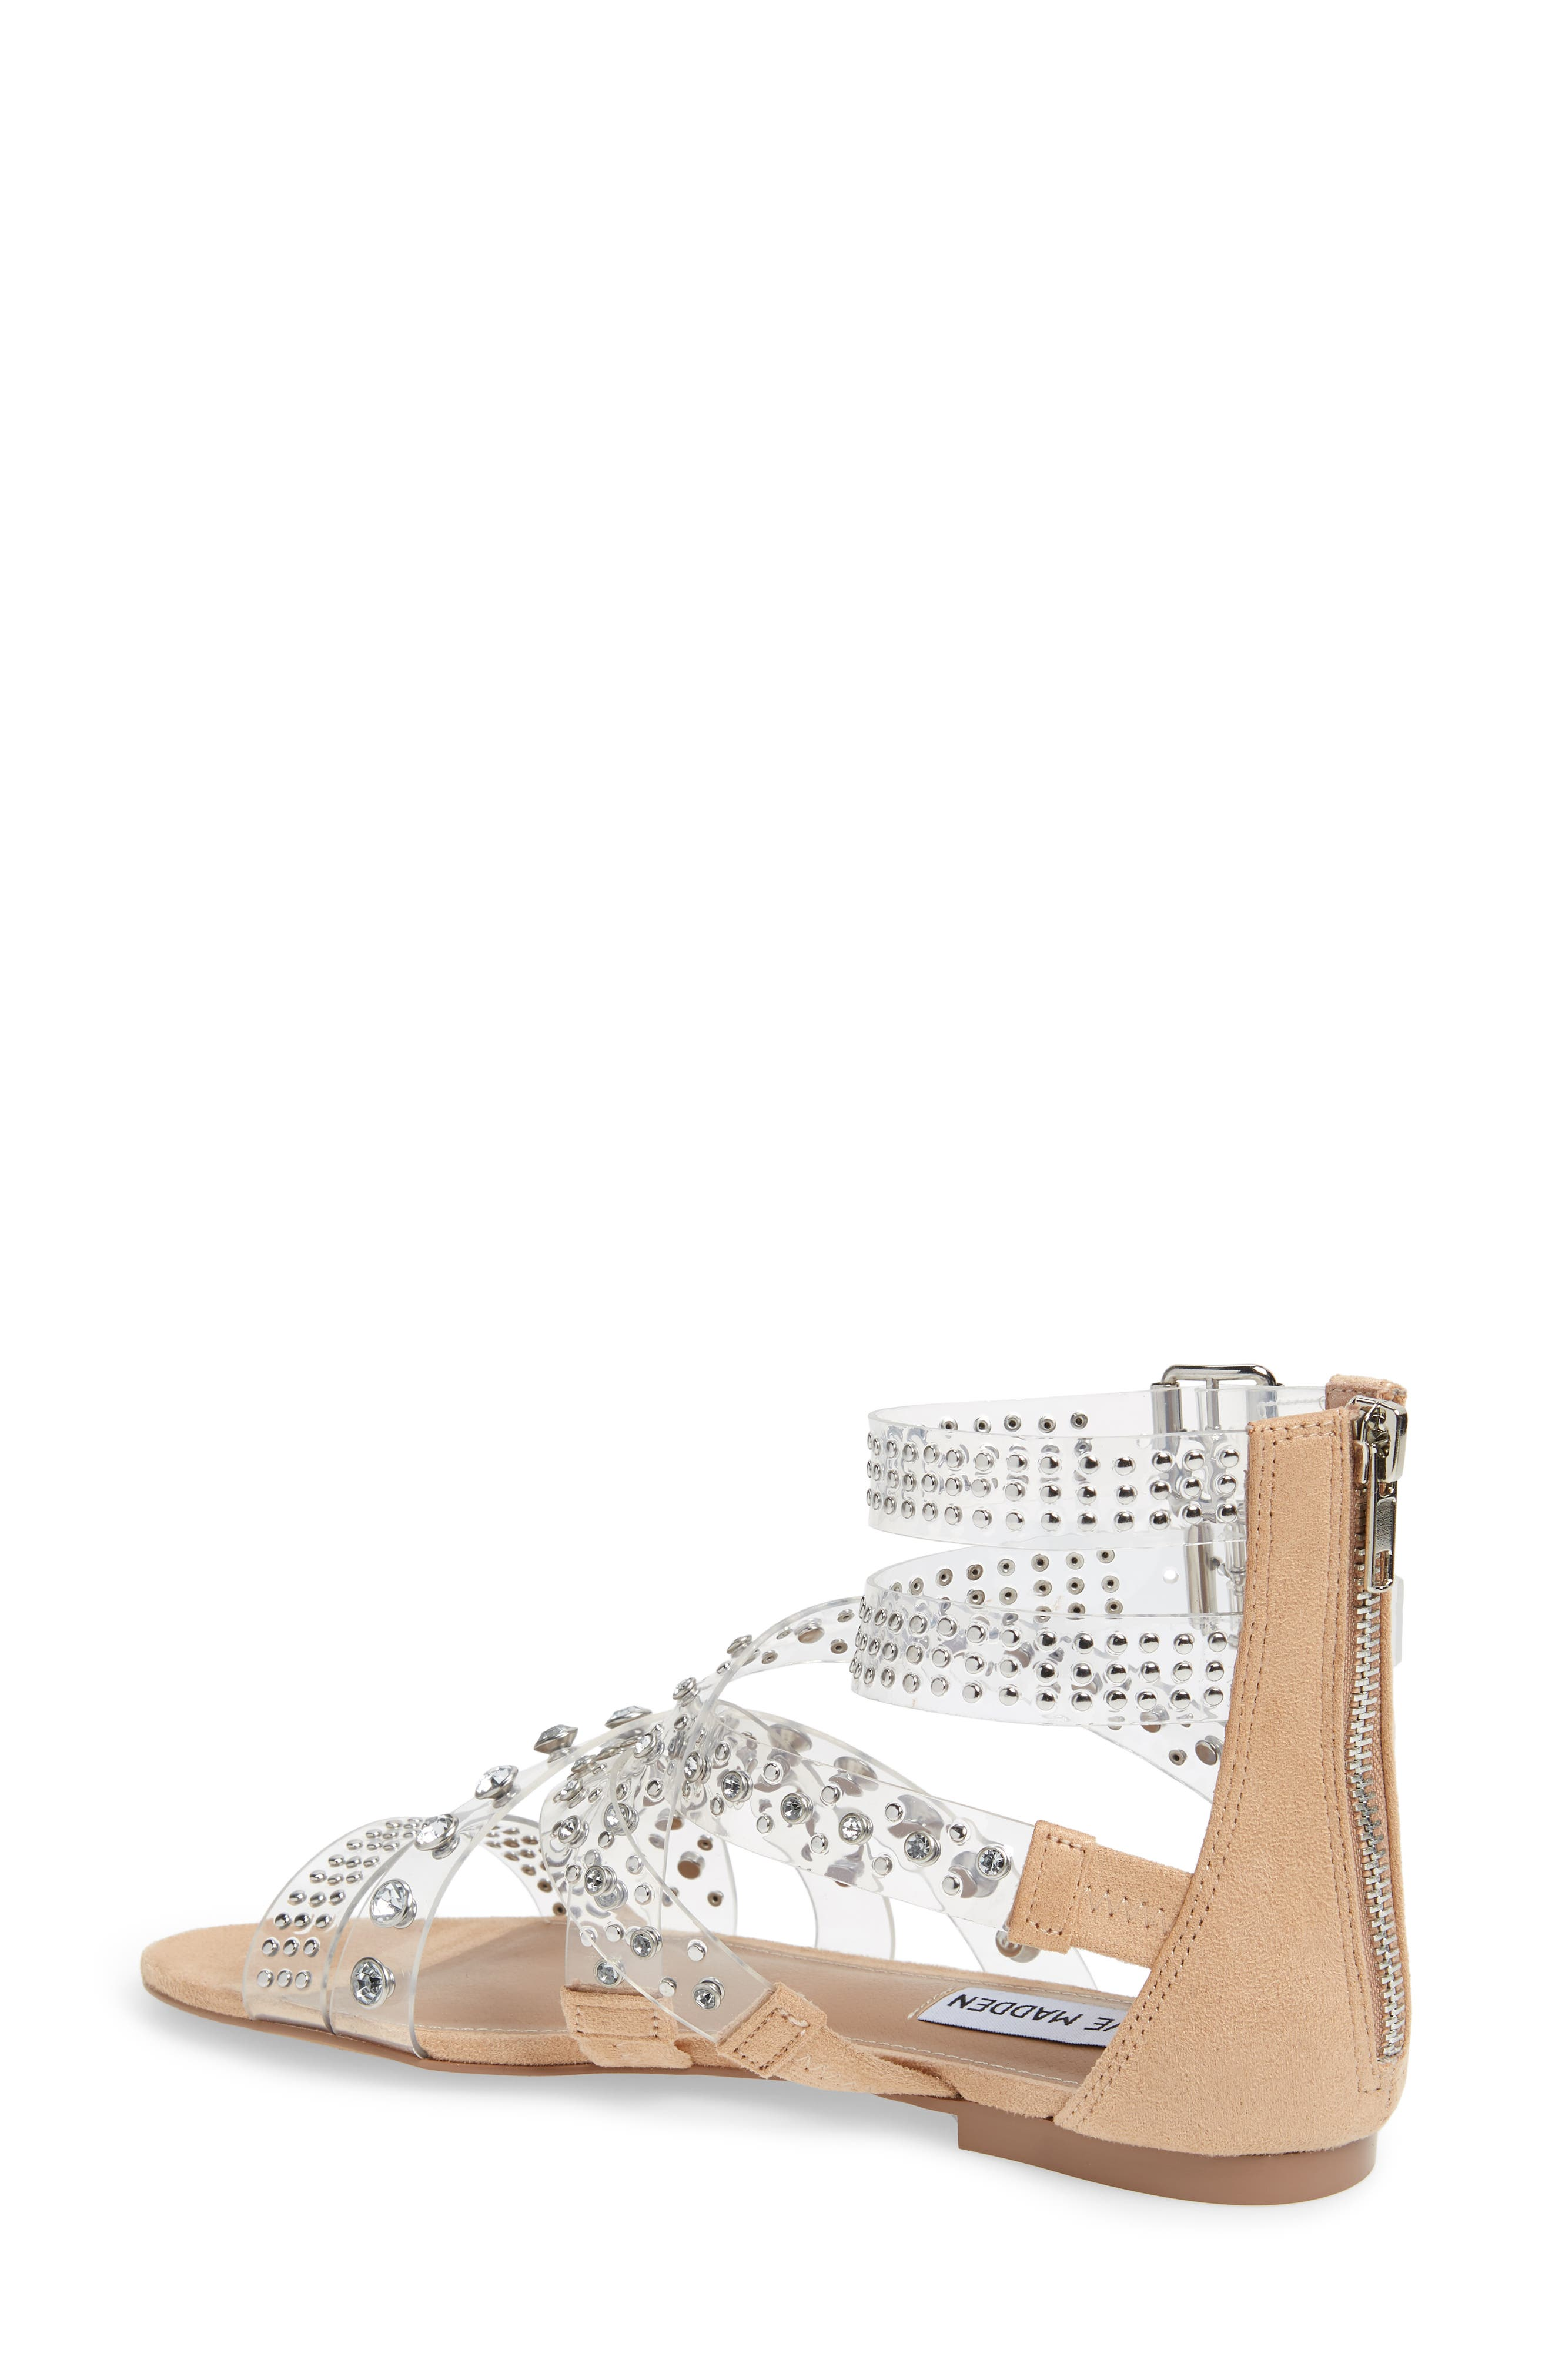 Shift Embellished Gladiator Sandal,                             Alternate thumbnail 2, color,                             Clear